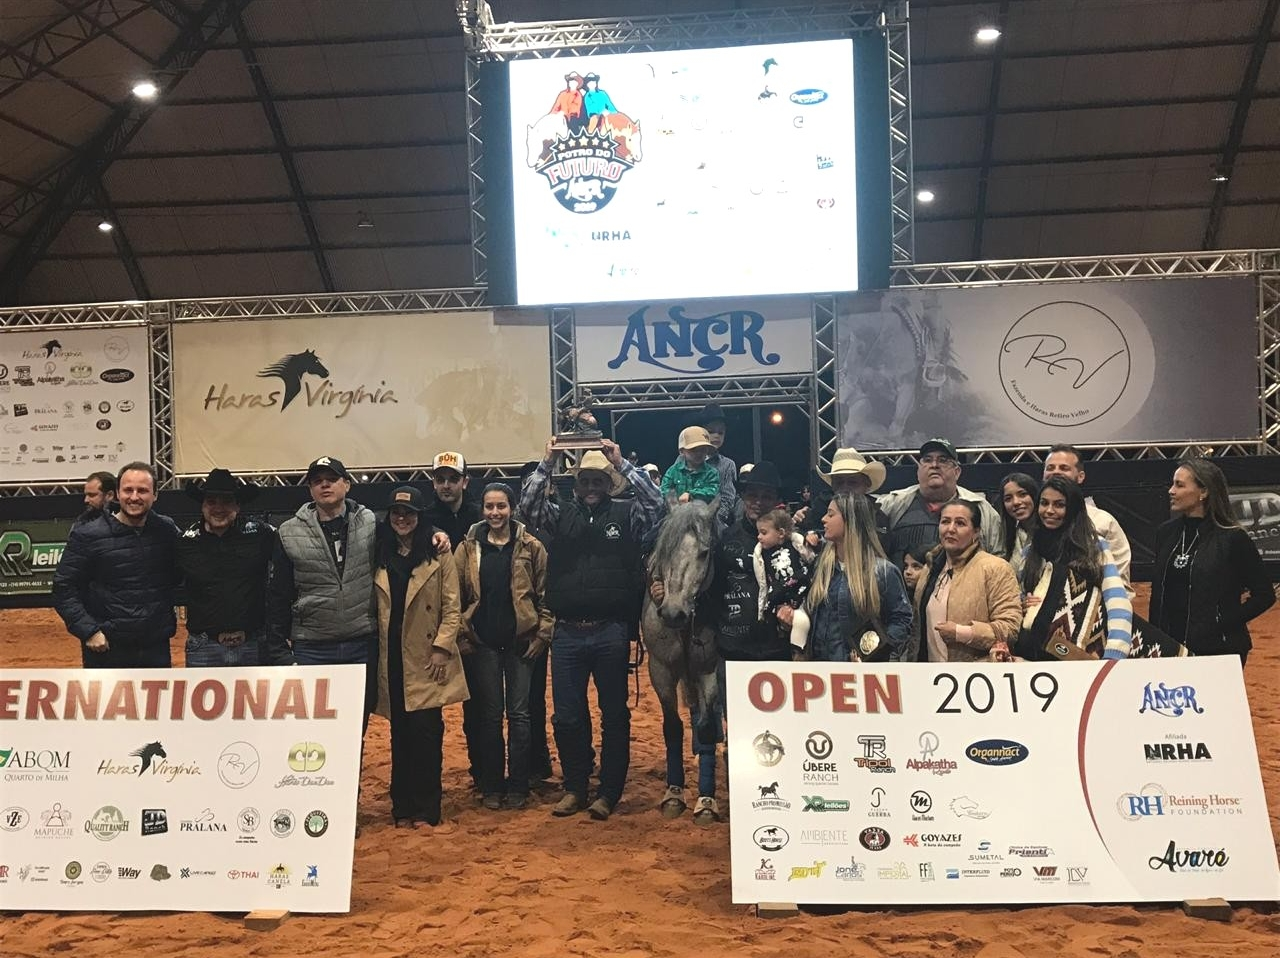 Jubileu da Roraima no pódio do 1º ANCR International Open Aberta N4